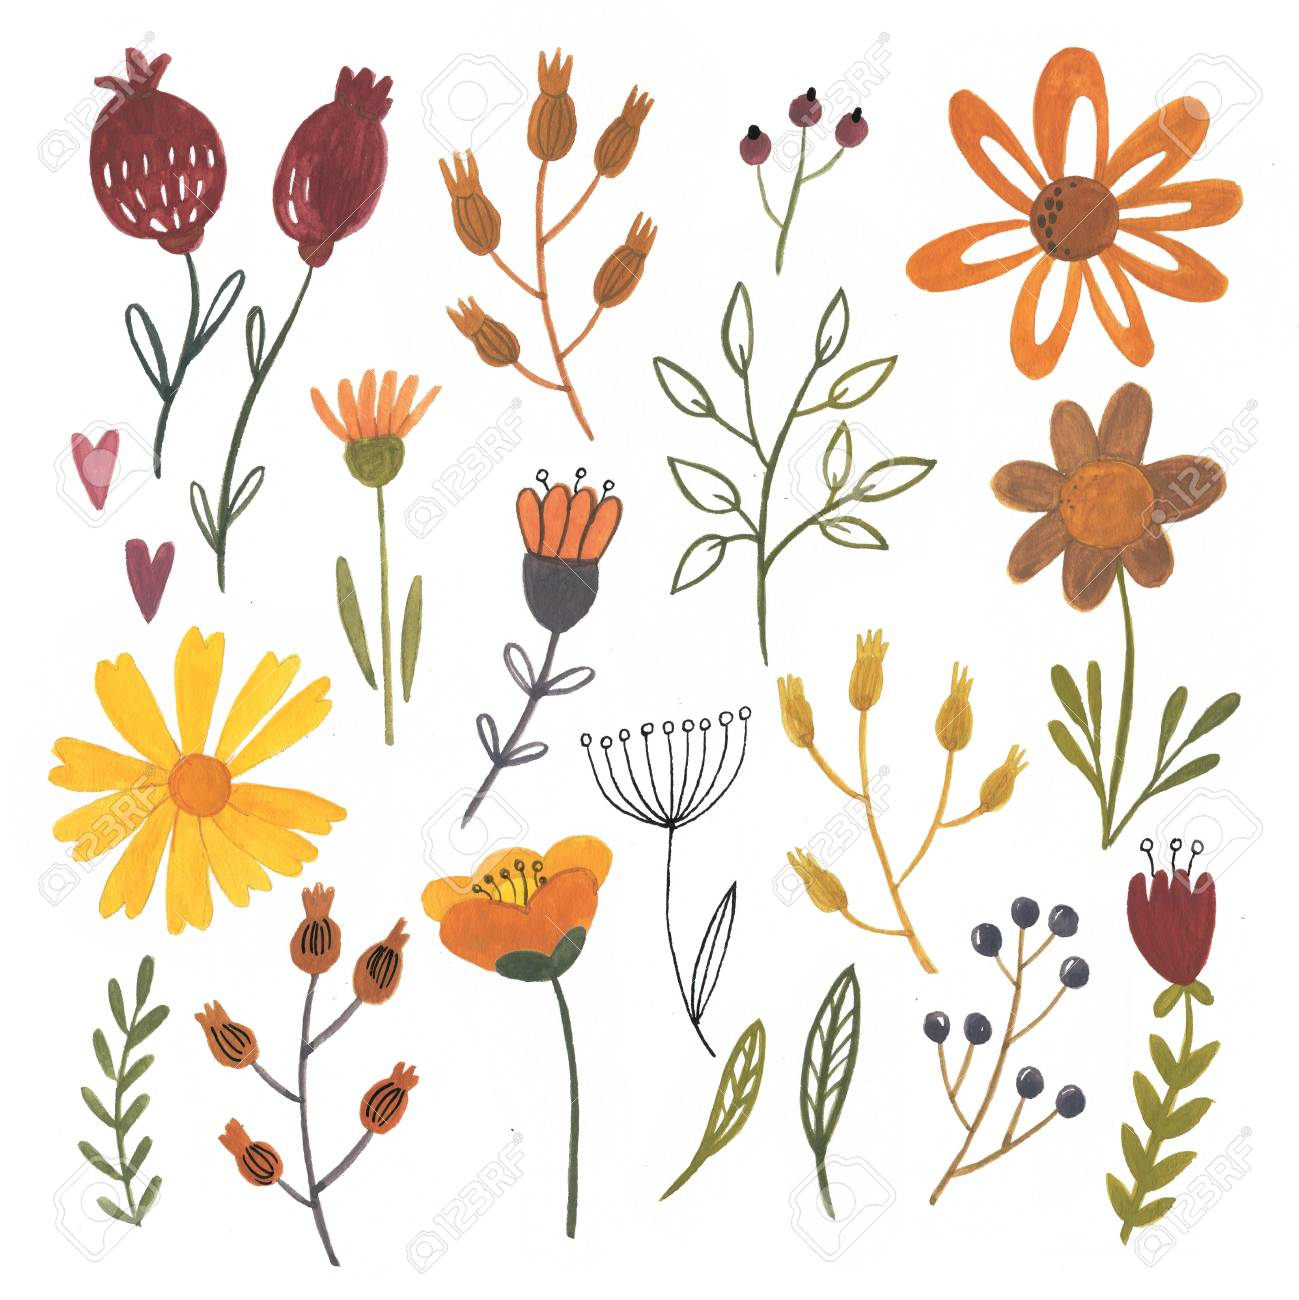 Gouache flowers and leaves - autentic hand drawn elements - 115501207